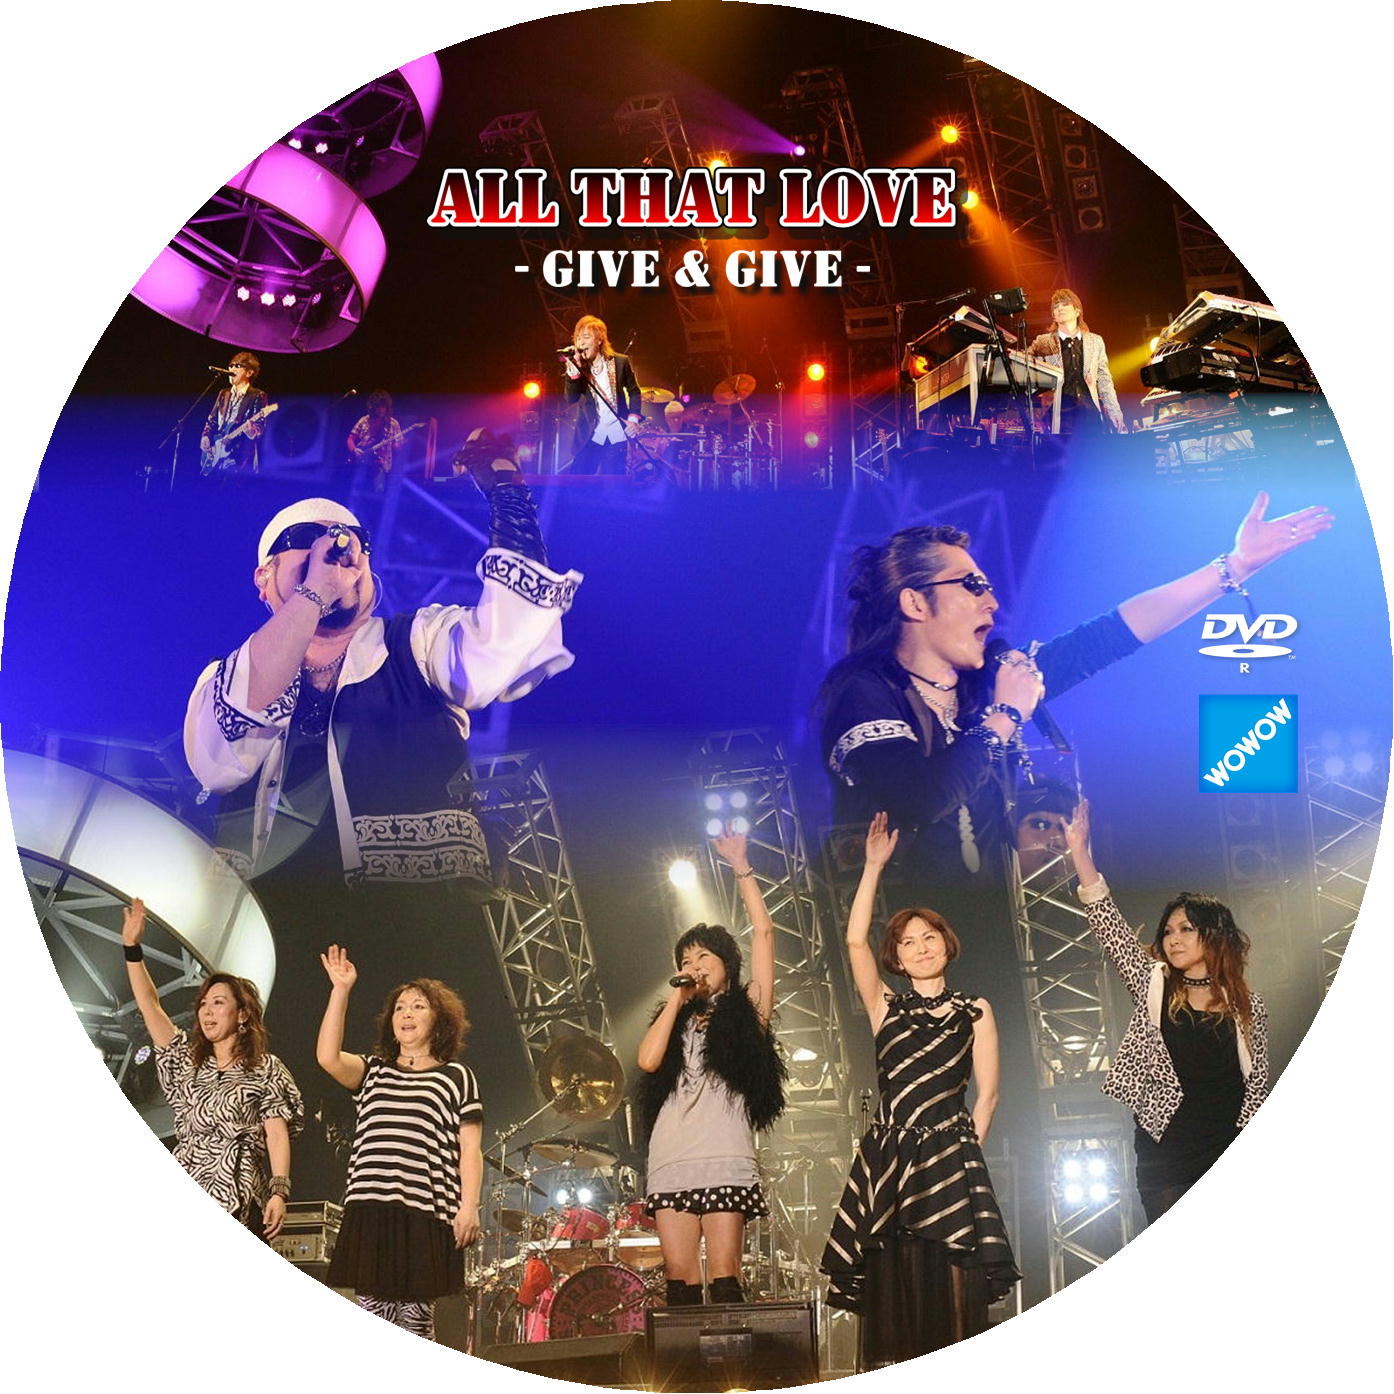 All That Love - GIVE & GIVE - DVDラベル